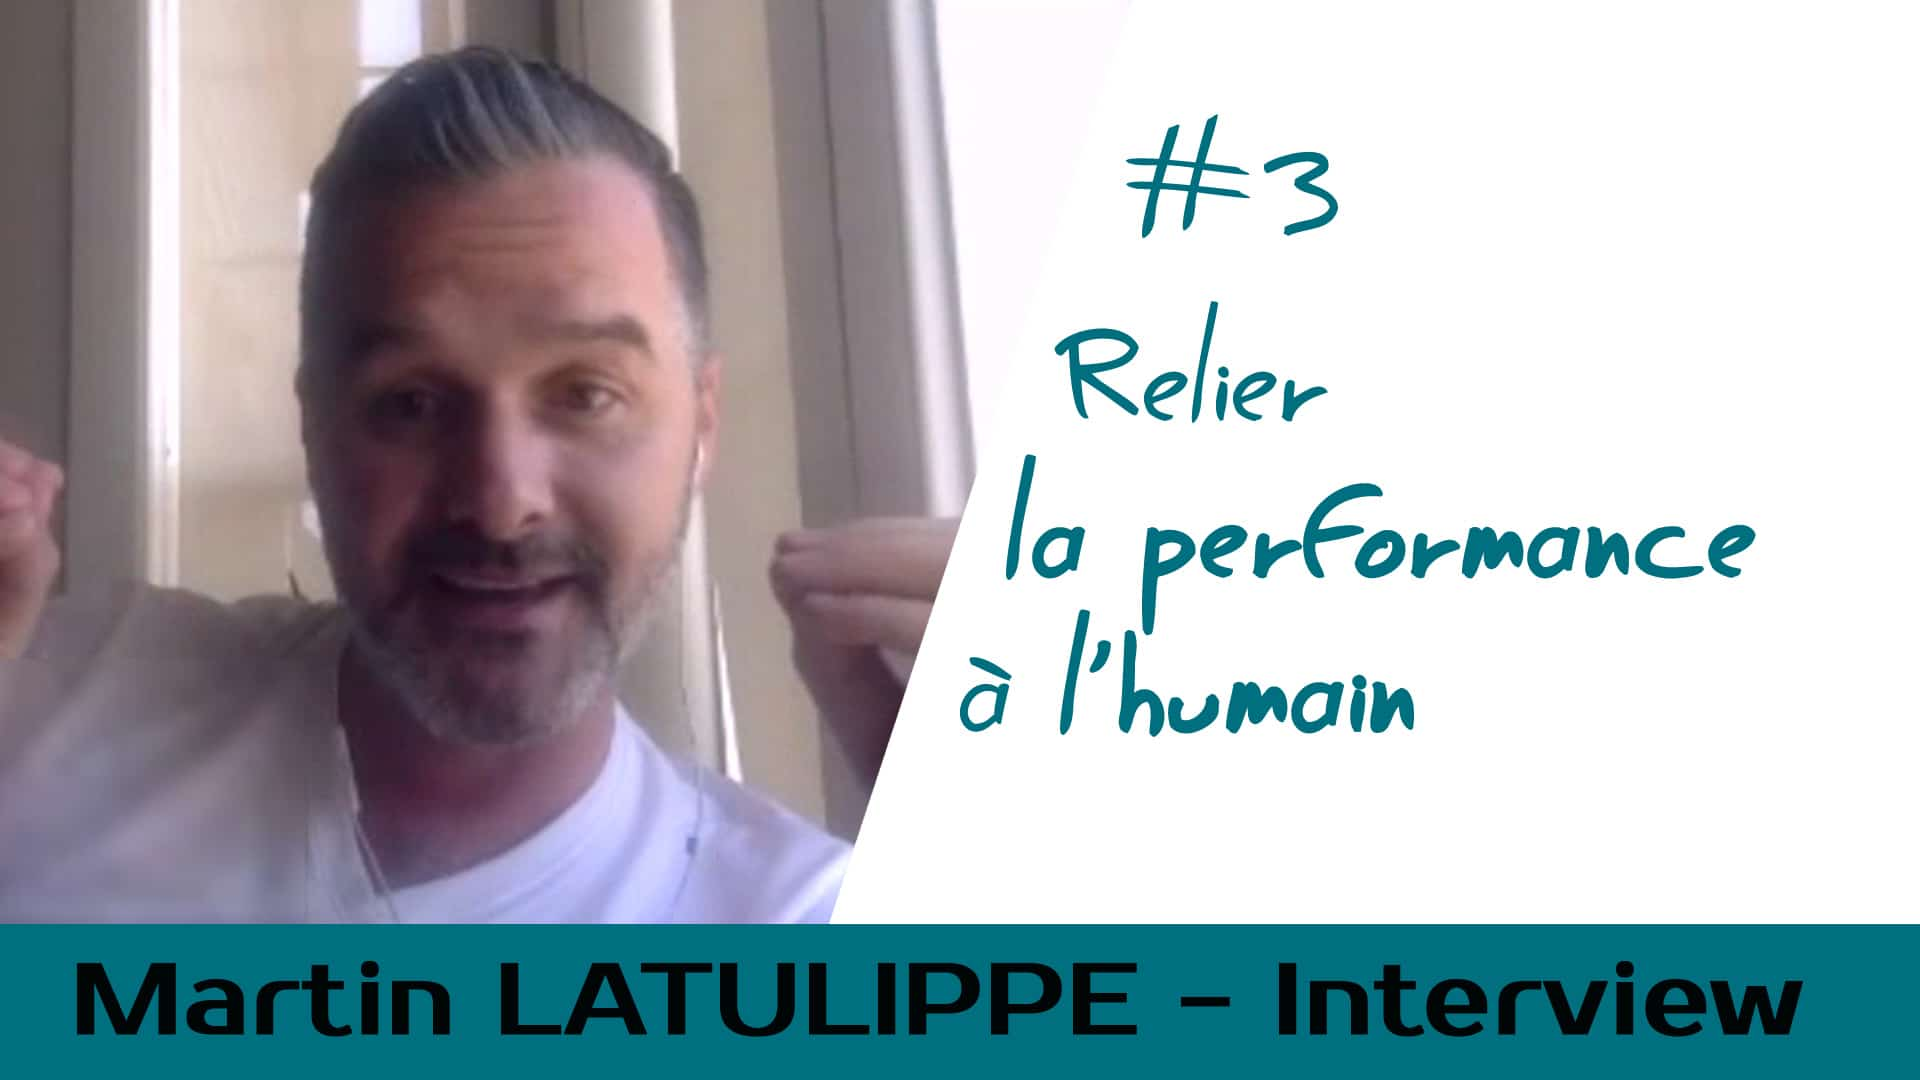 Relier la performance à l'humain – Interview Martin Latulippe #3